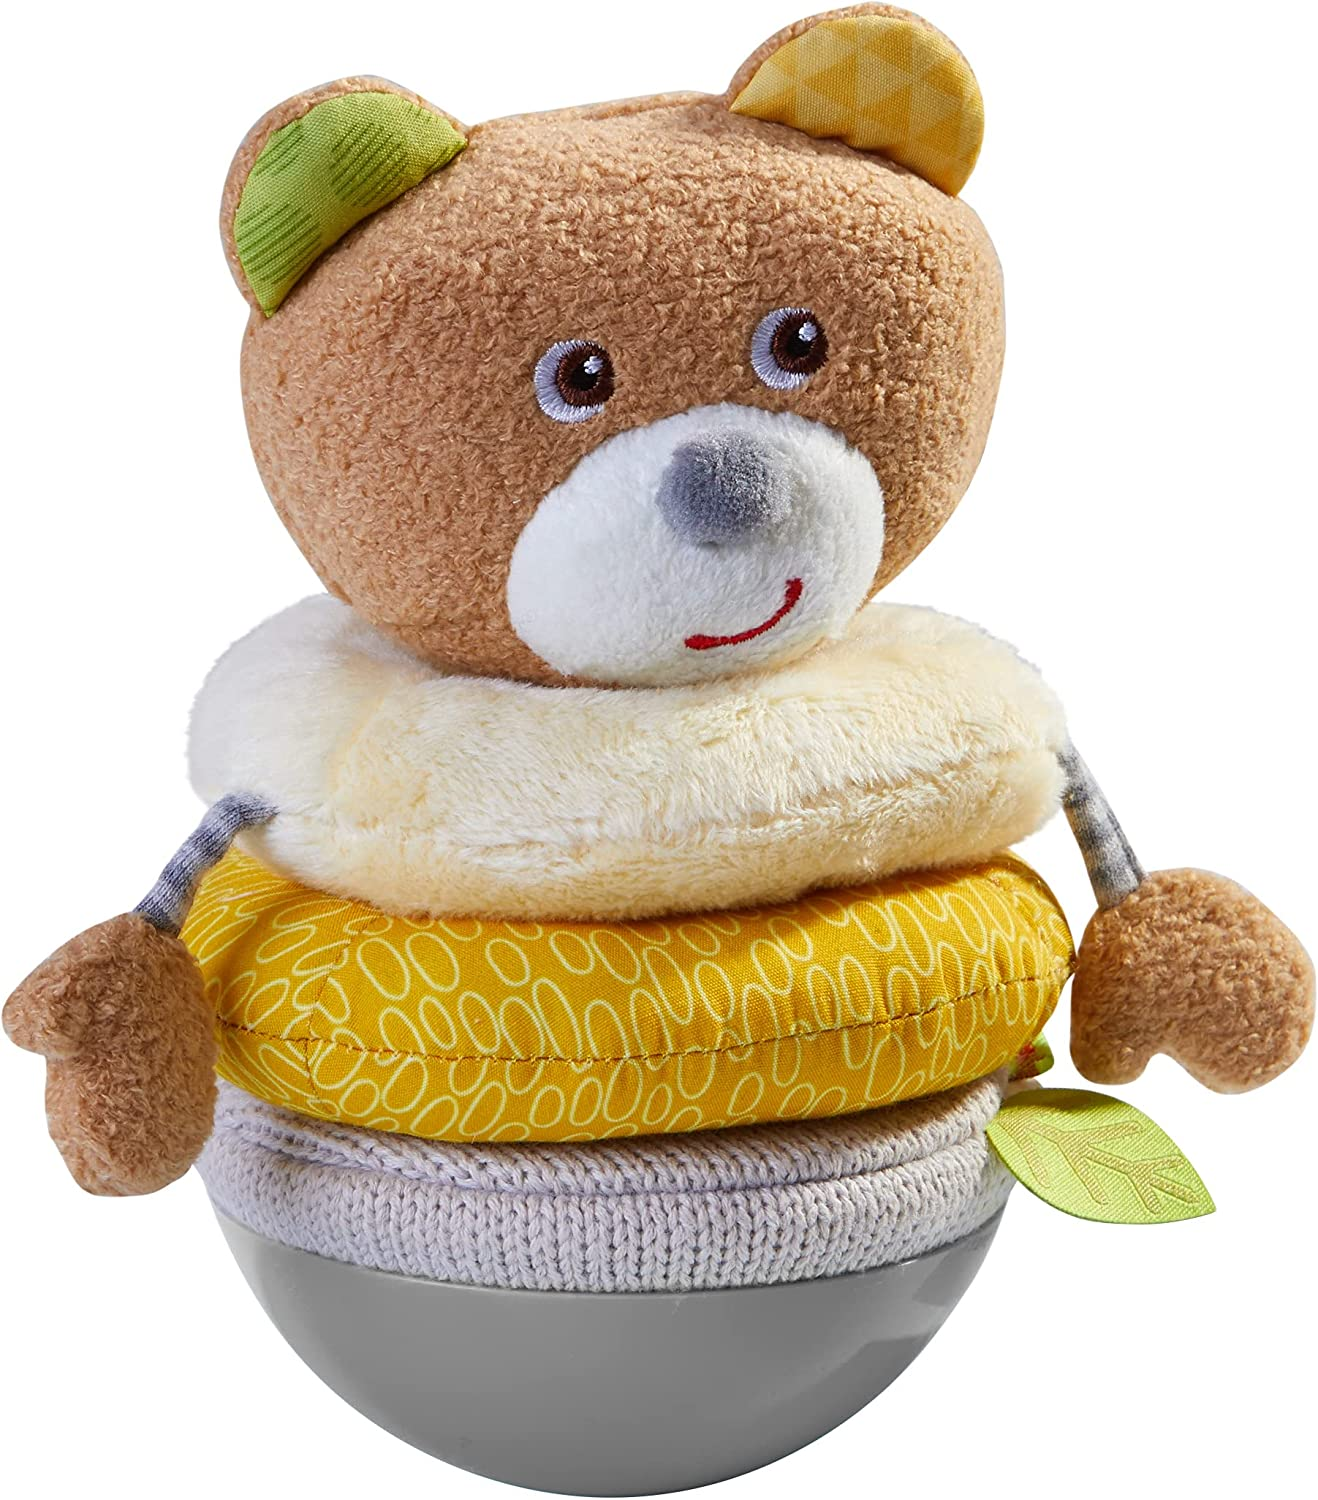 HABA Roly Poly Bear Soft Wobbling & Chiming Baby Toy